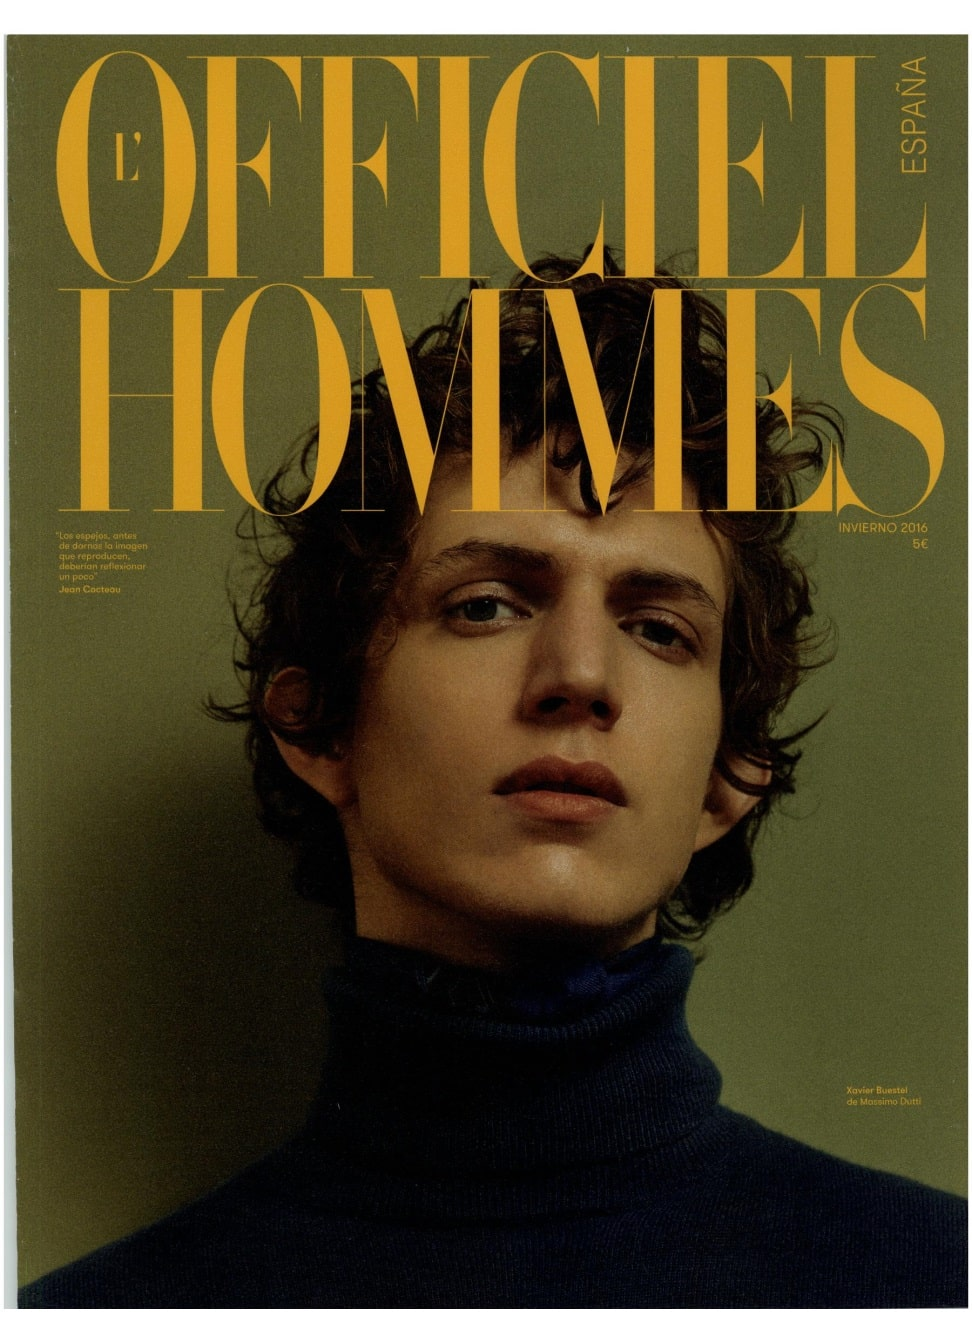 LOFFICIEL-HOMMES-SPAIN-01.12.2015-COVER-min